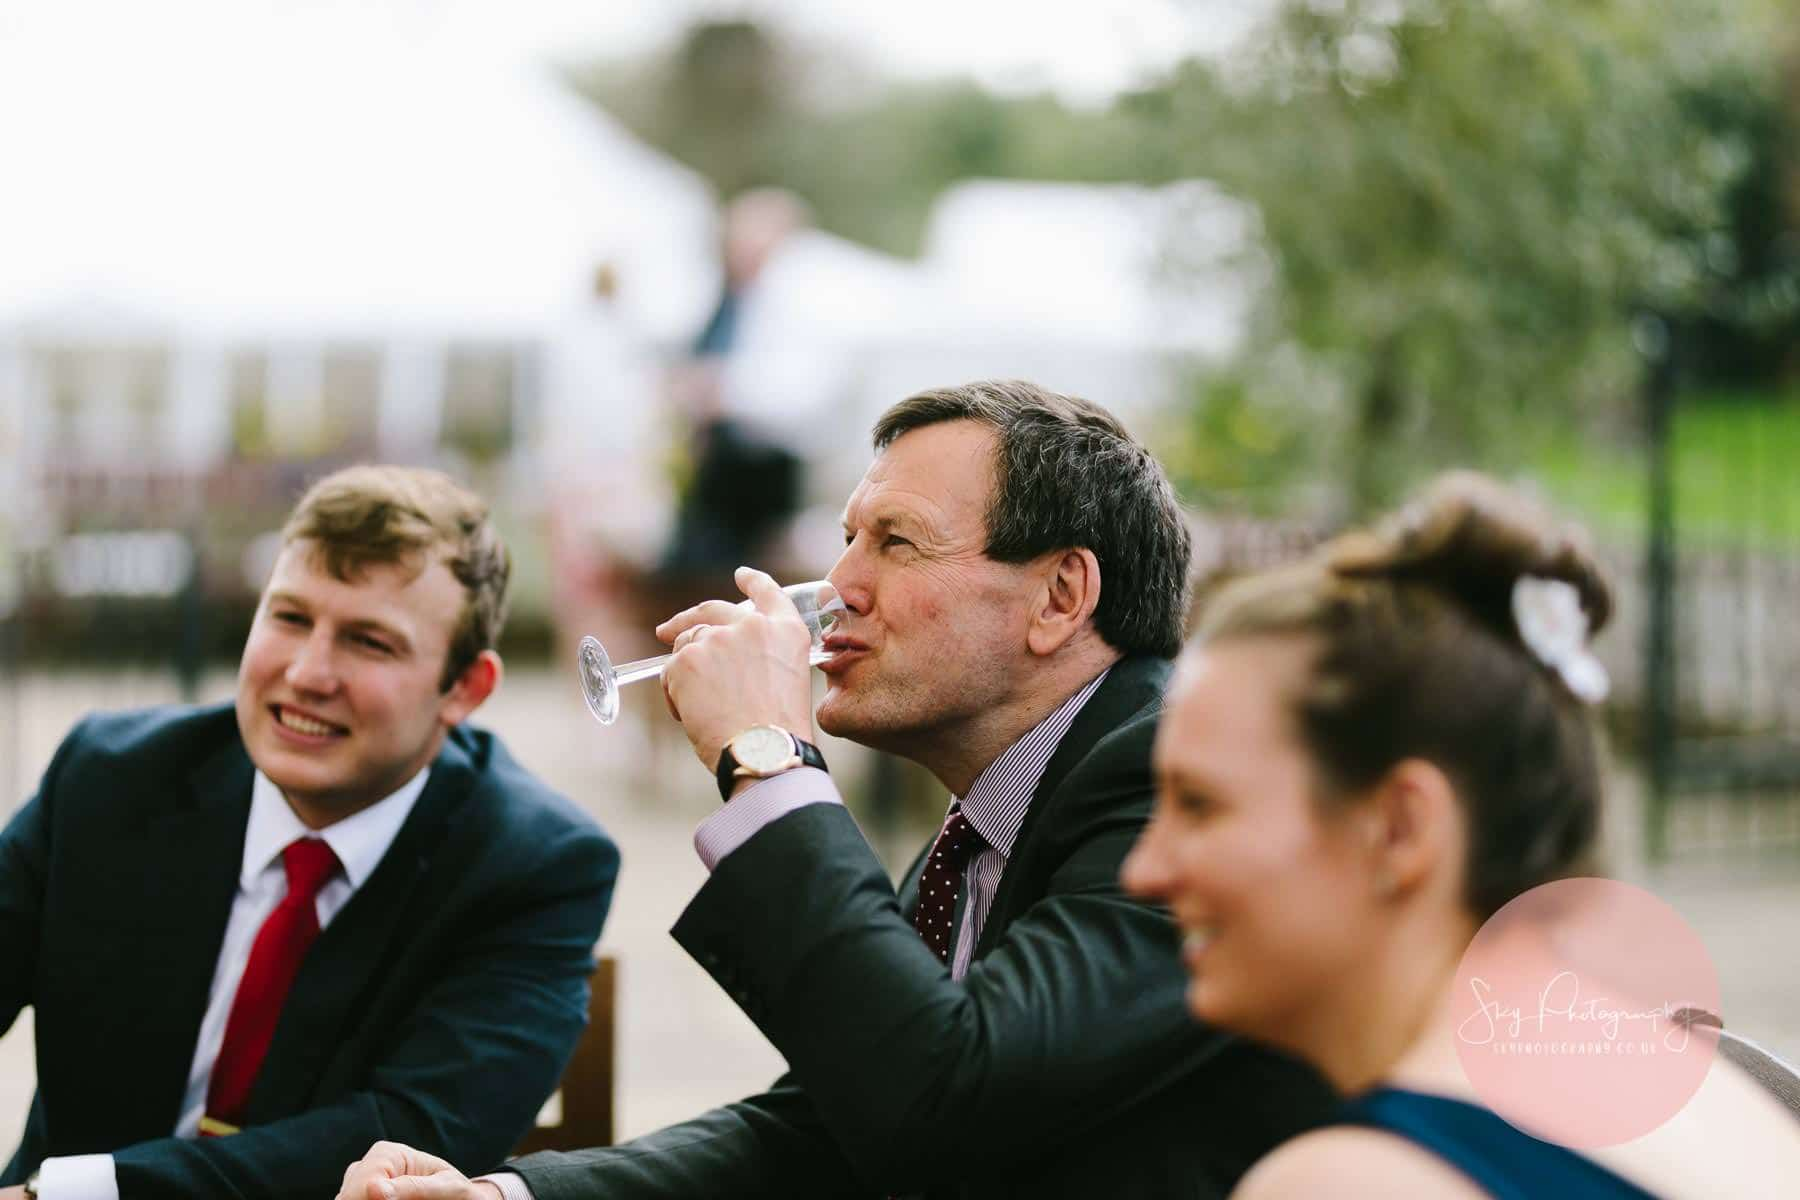 Male wedding guest drinking champagne